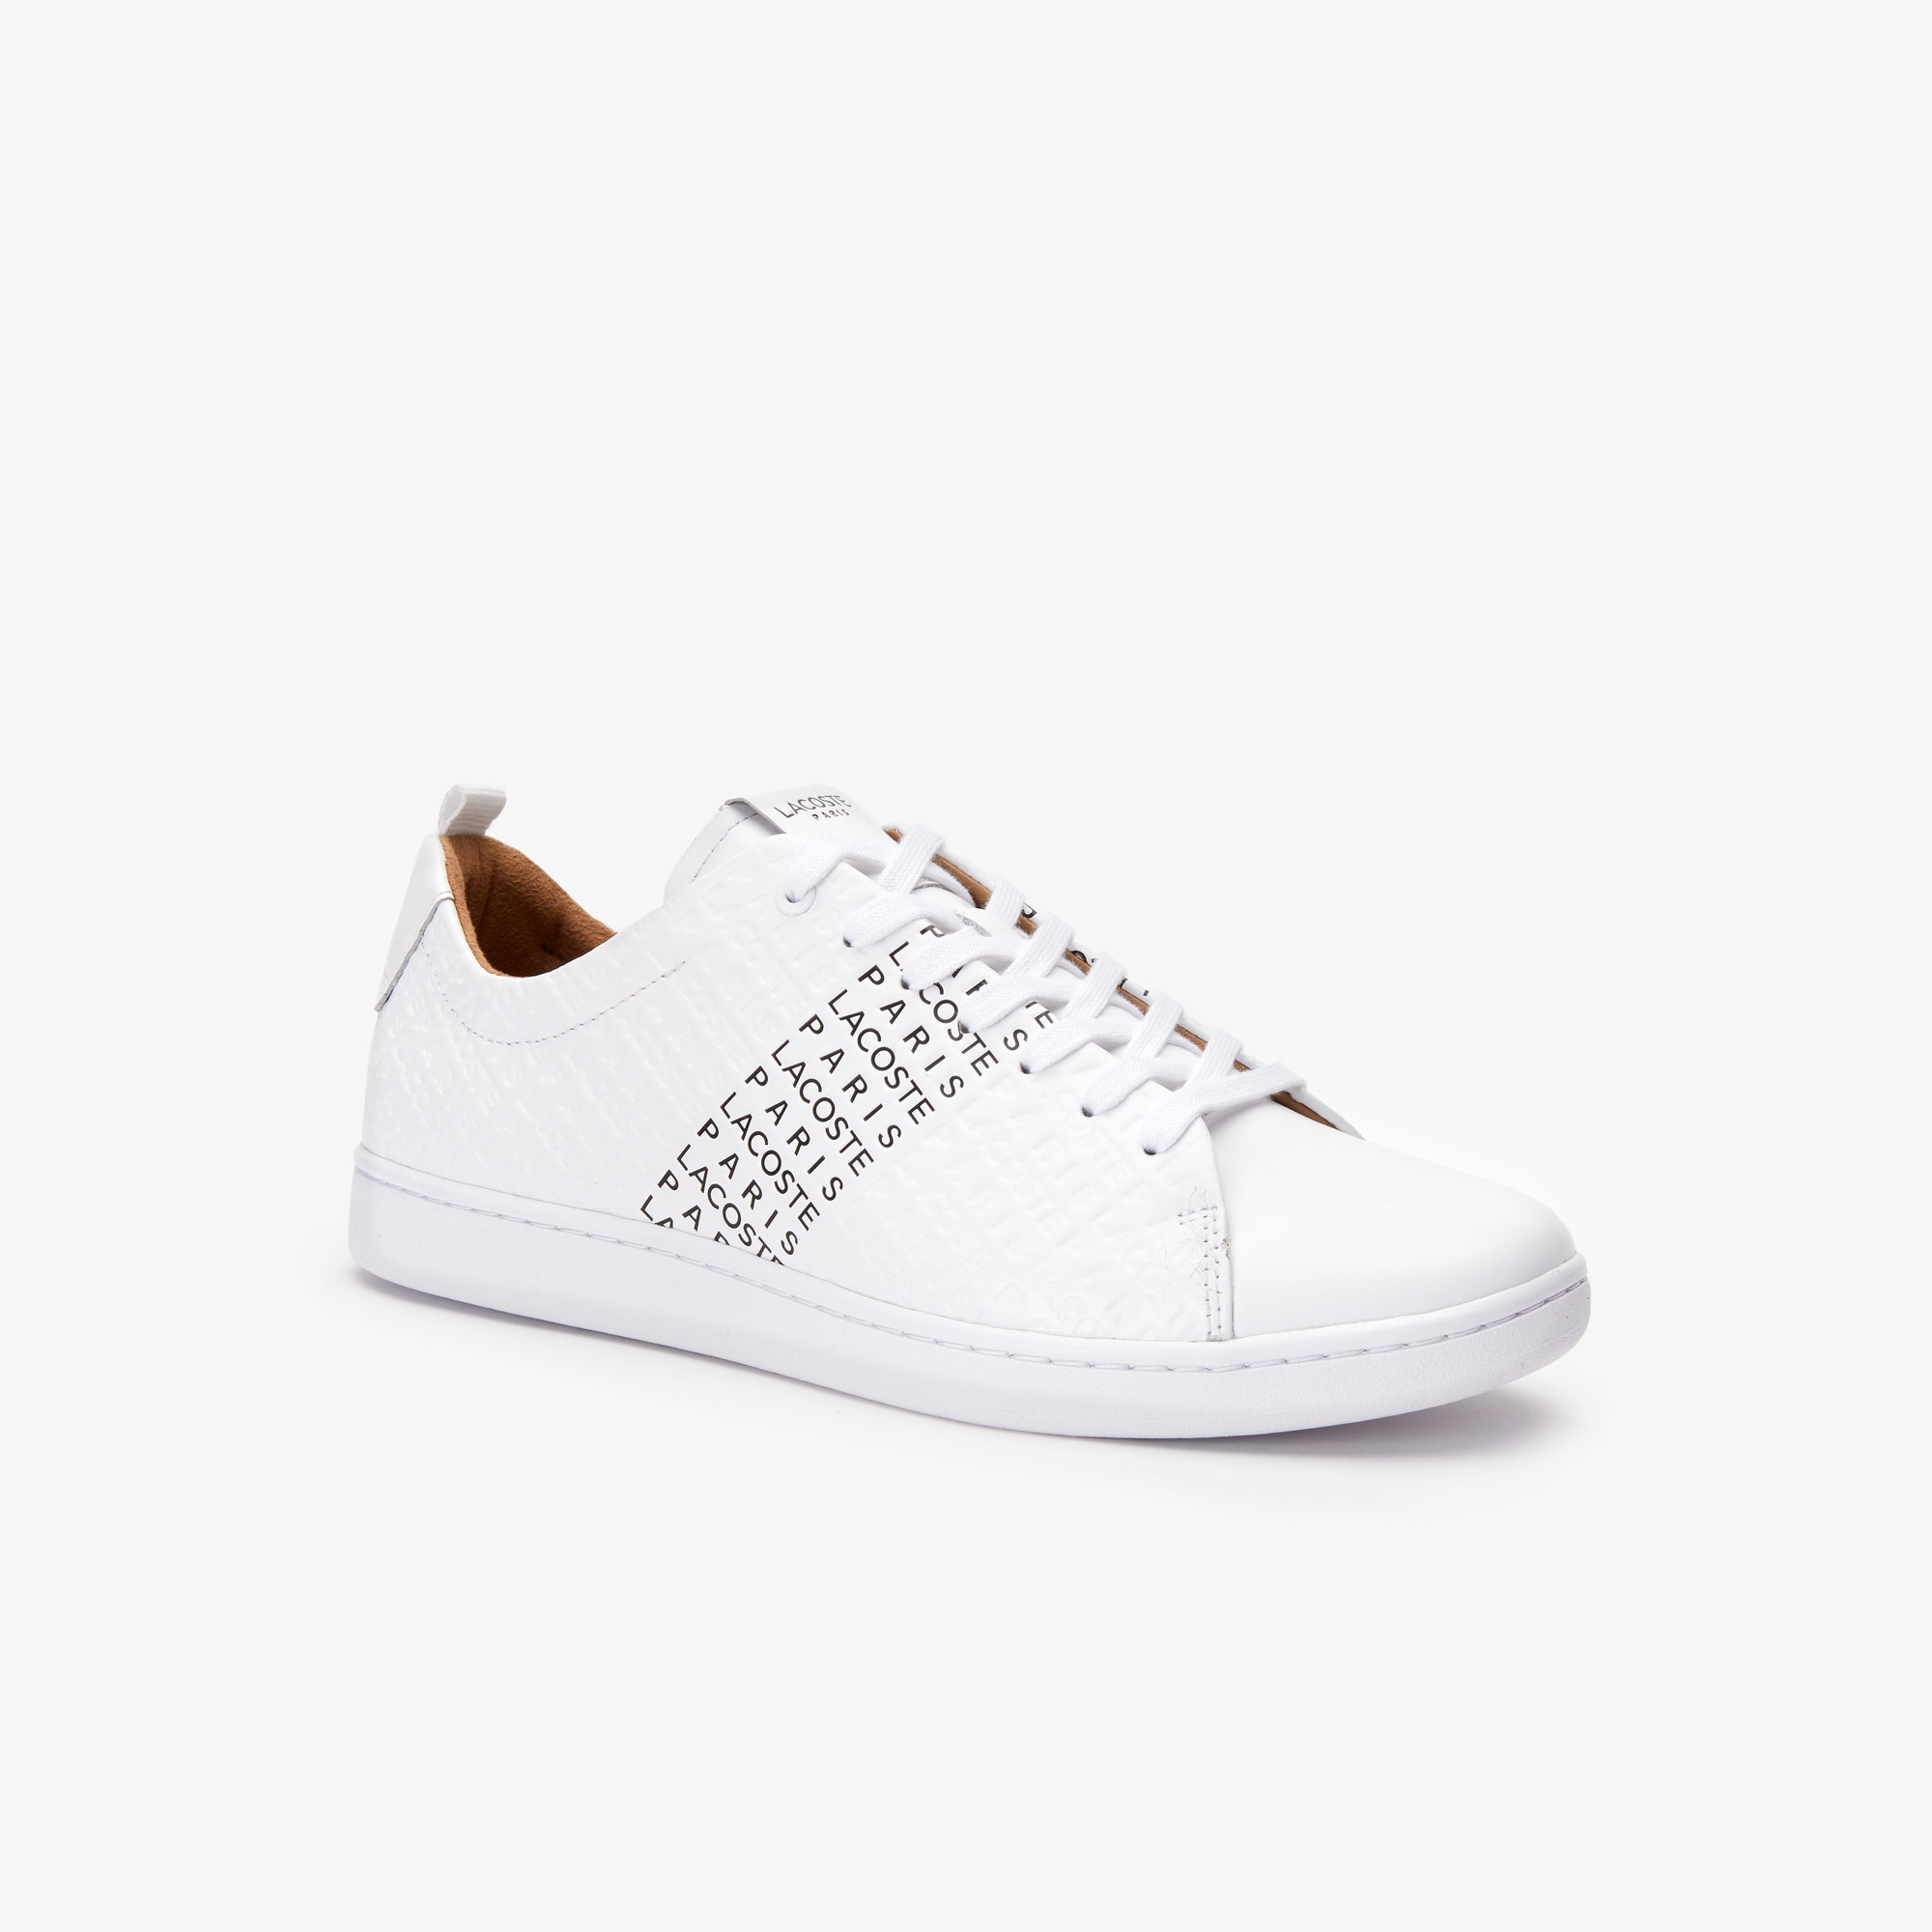 Lacoste Sneakers Men's Carnaby Evo Leather Sneakers